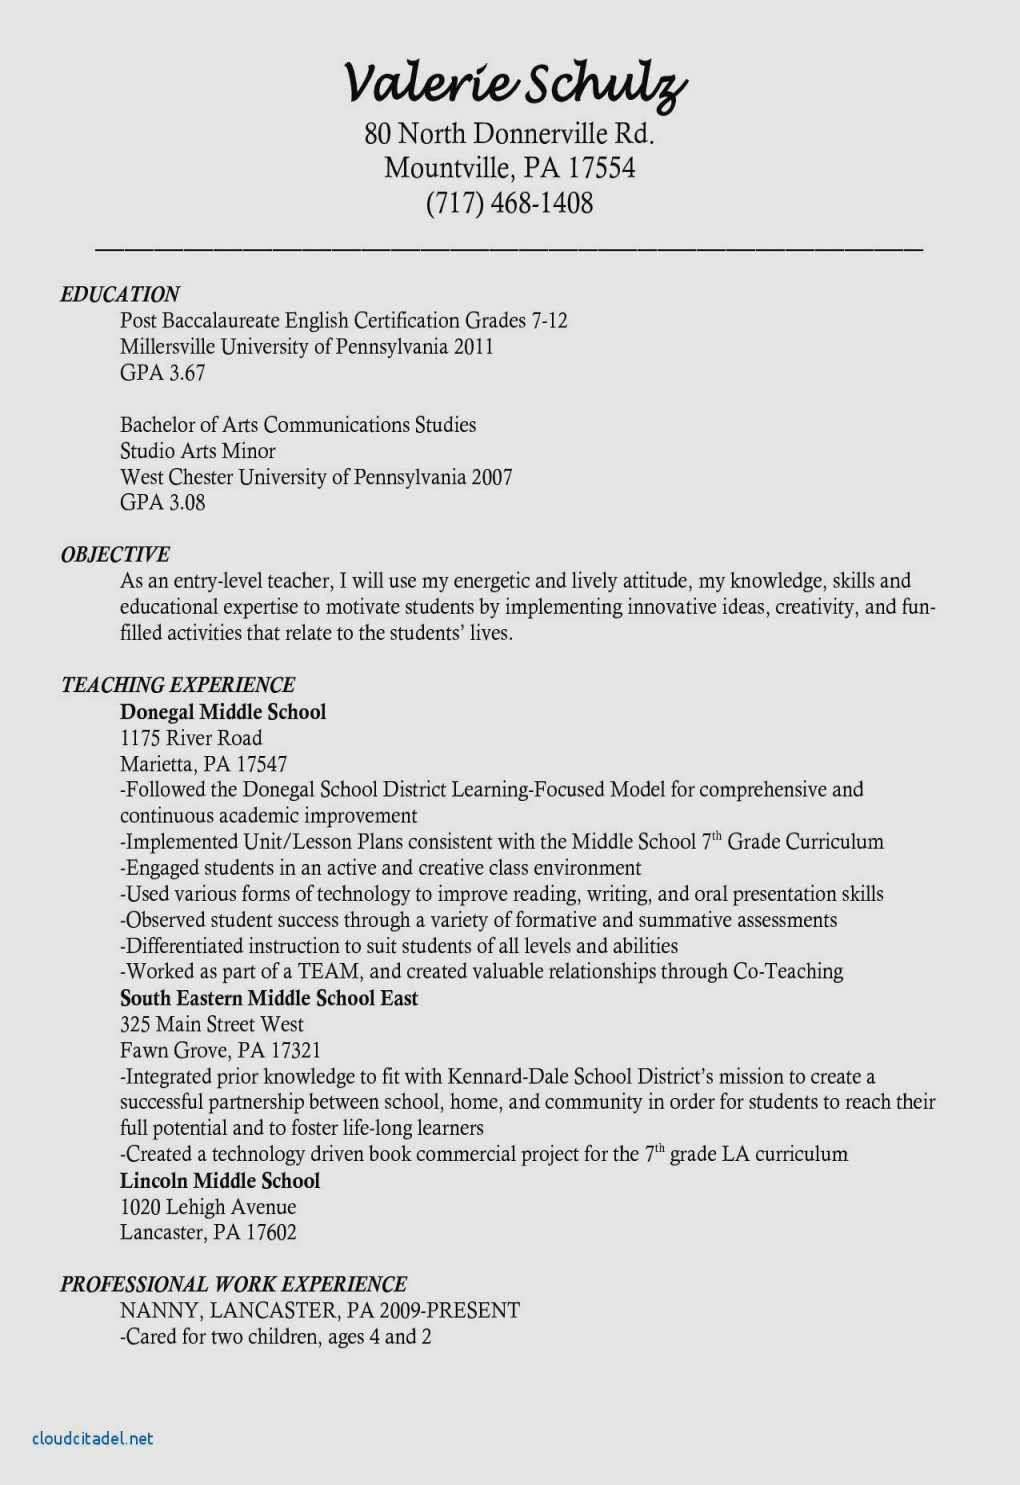 Teacher Resume Template Free 17 Templates & Samples Cover